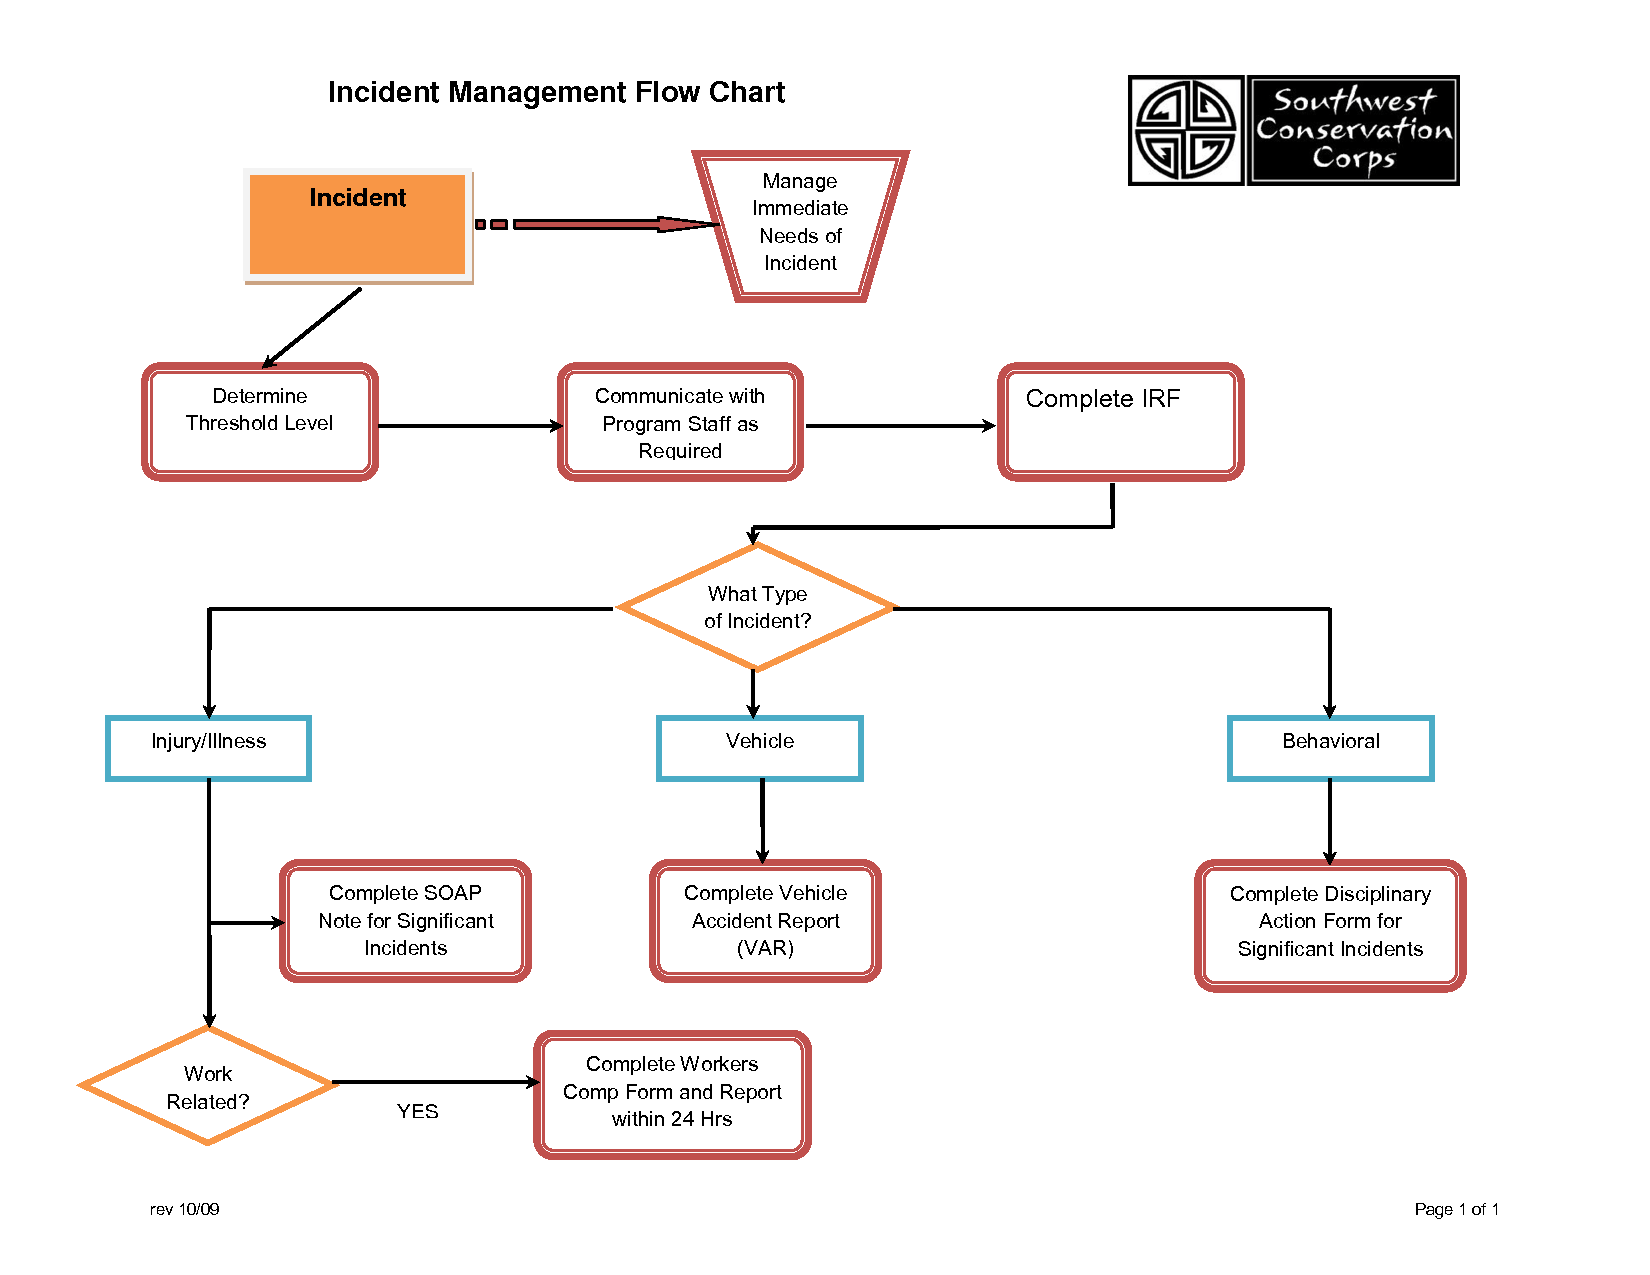 Program Management Process Templates | Incident Management Flow Chart  Procedure Flow Chart Template